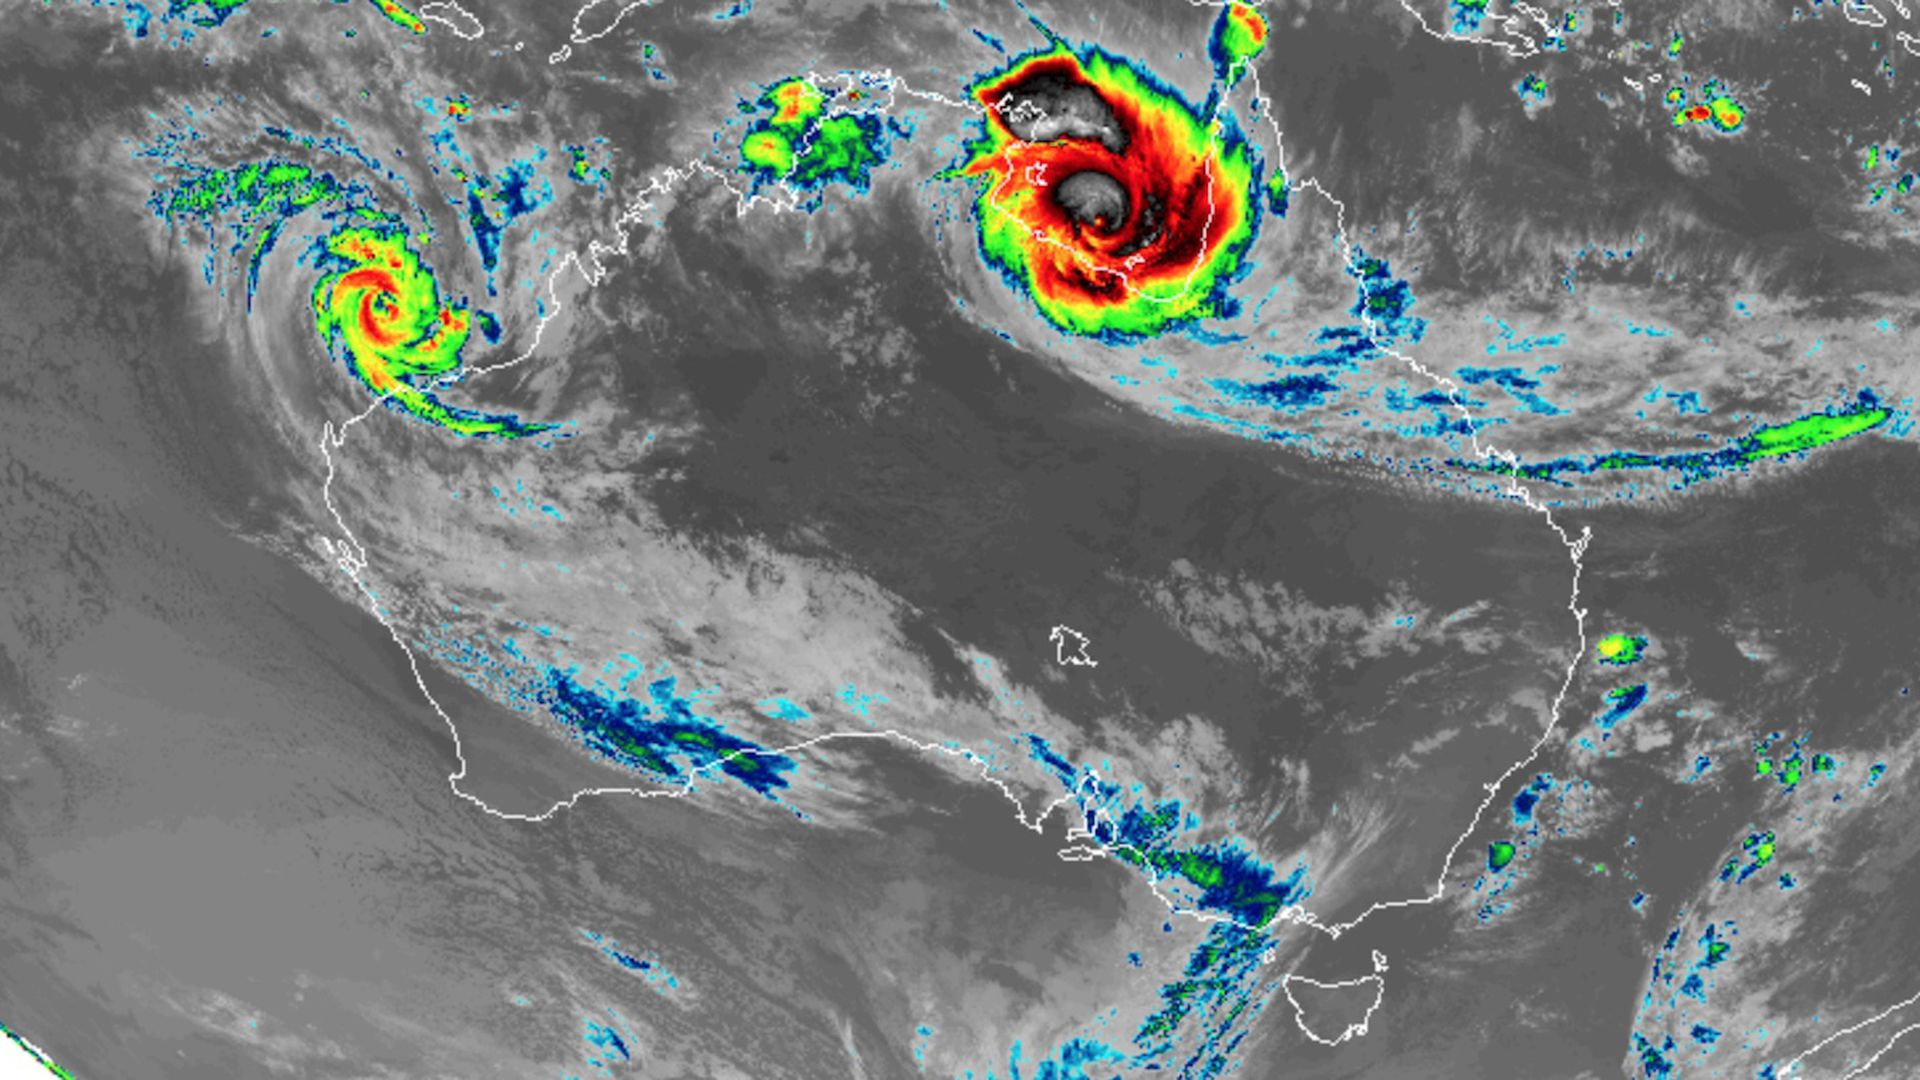 Satellite image showing two cyclones spinning off the Australian coast.